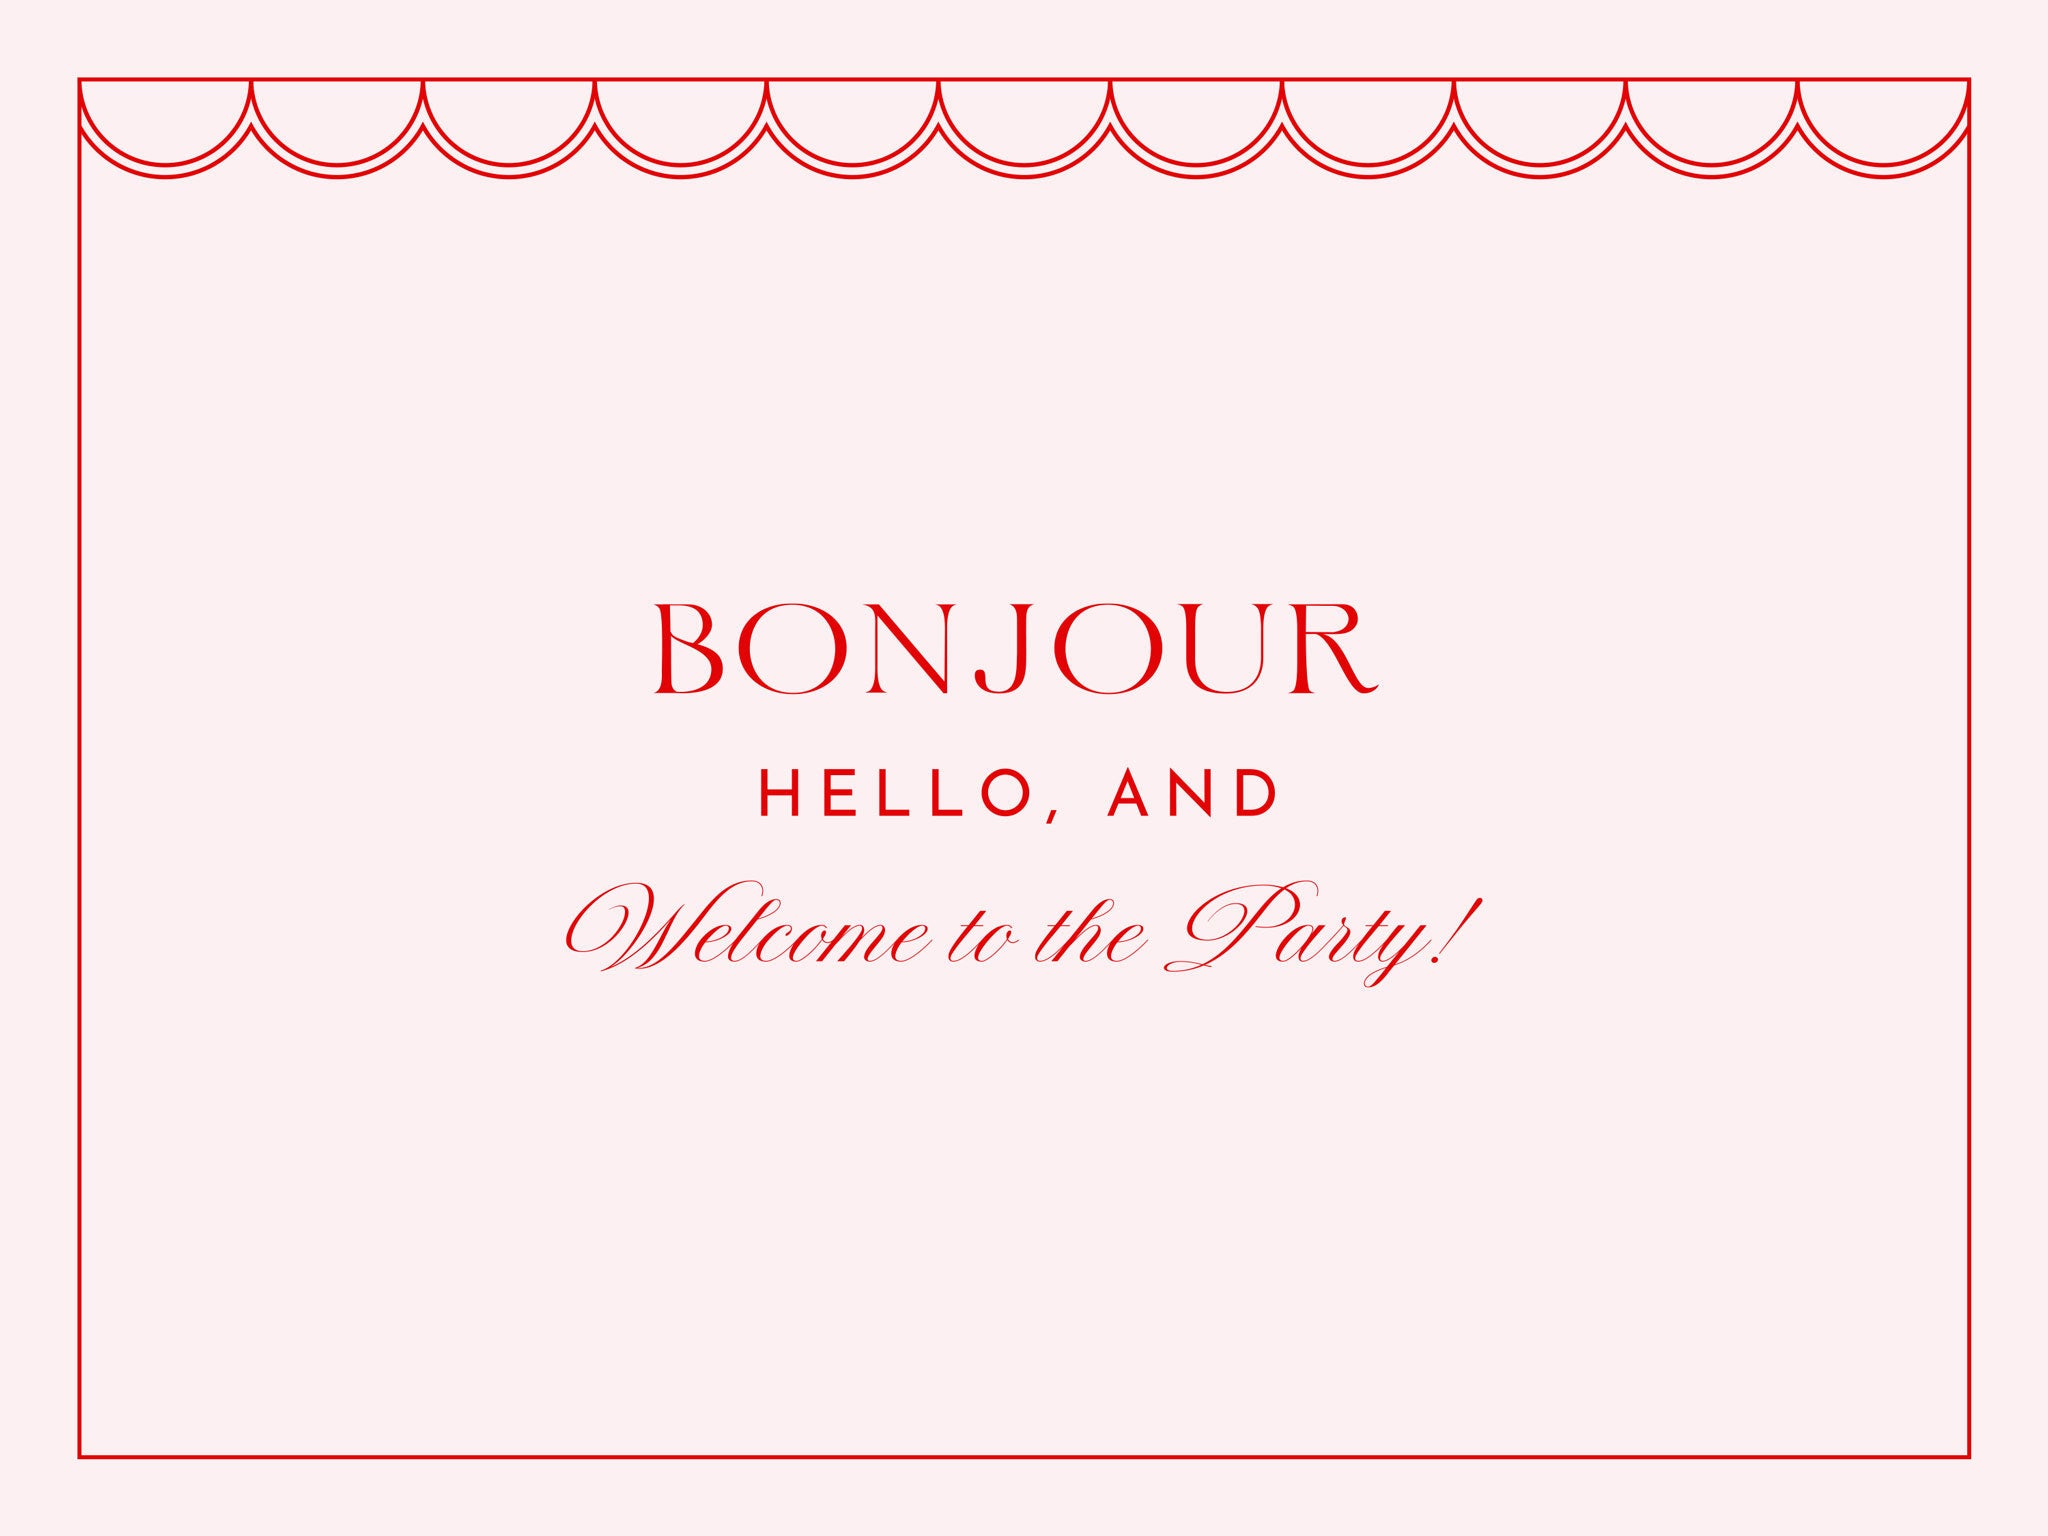 Bonjour Fete Installation and Party Decor Services